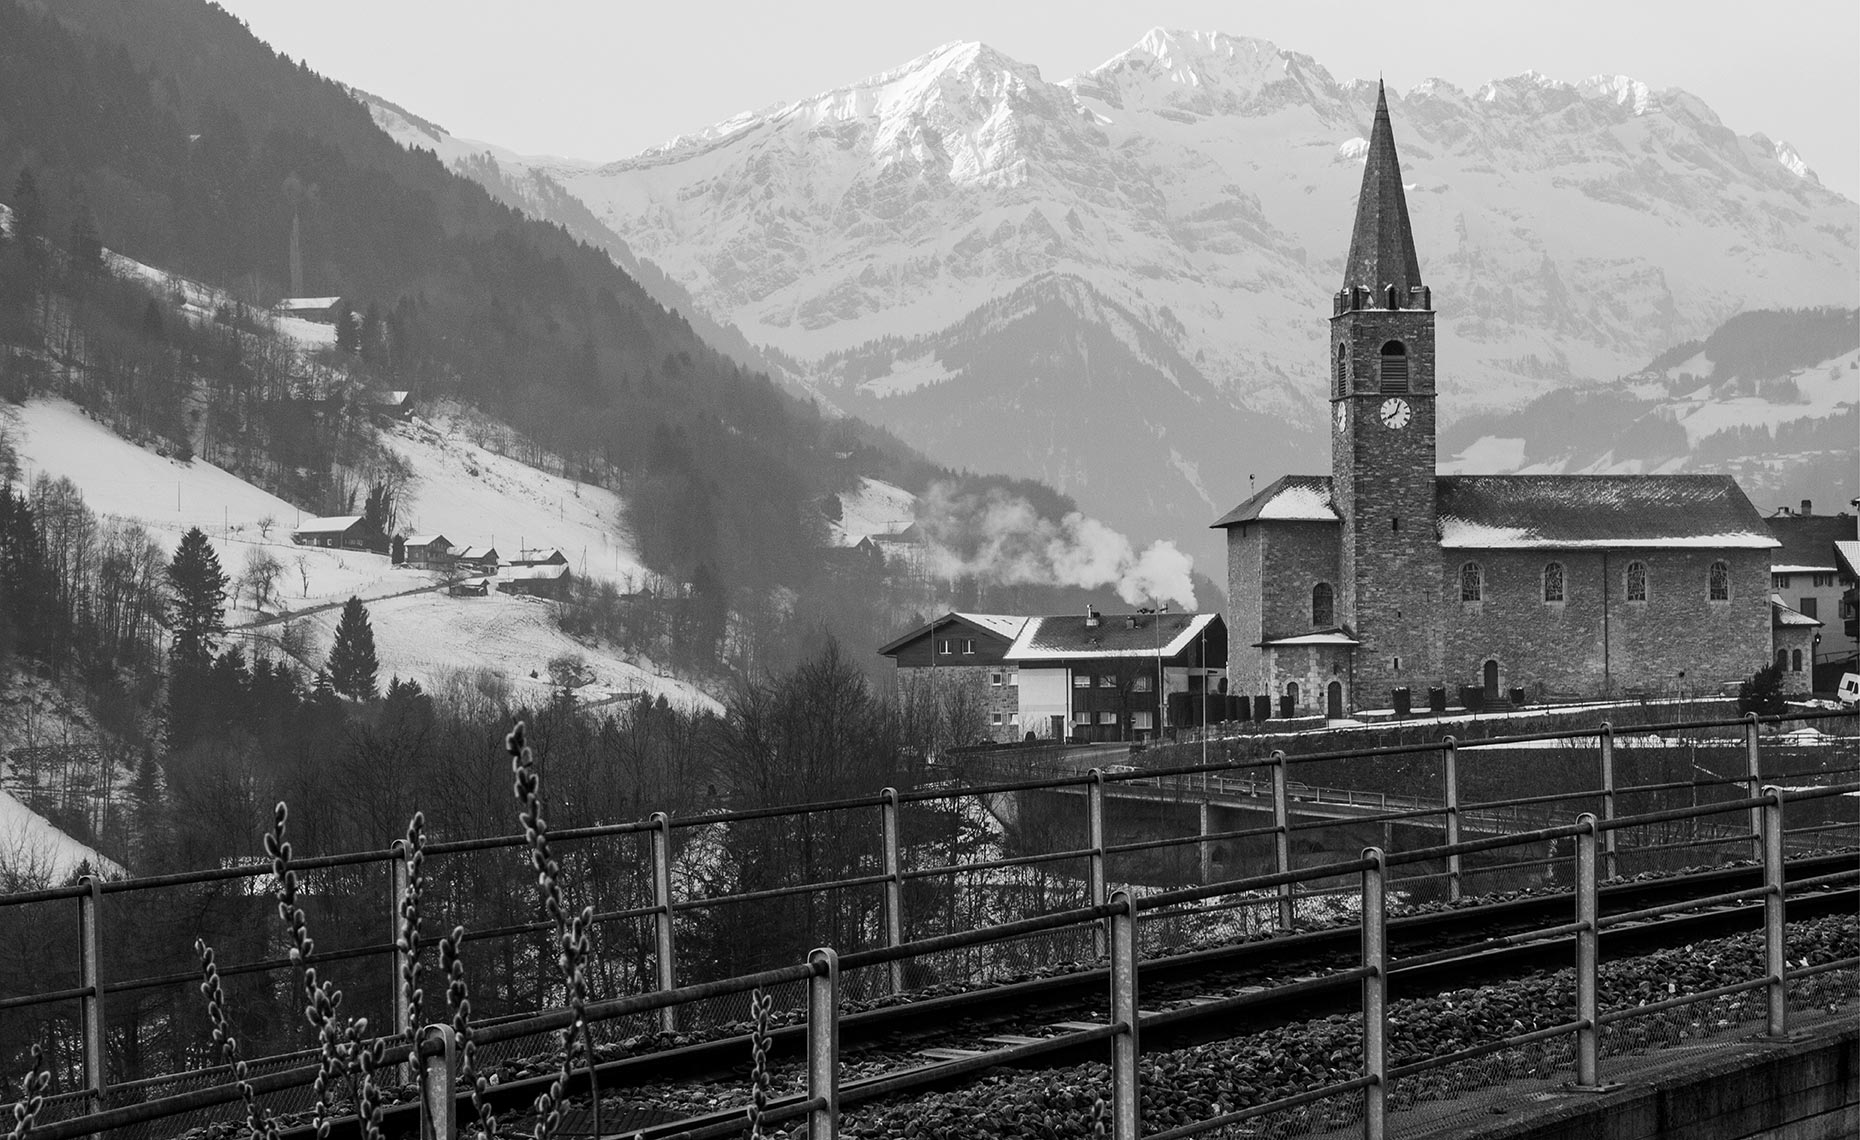 52_Les_Croset_Switzerland_Environment_Landscape_Chris_Wellhausen_Photography.JPG